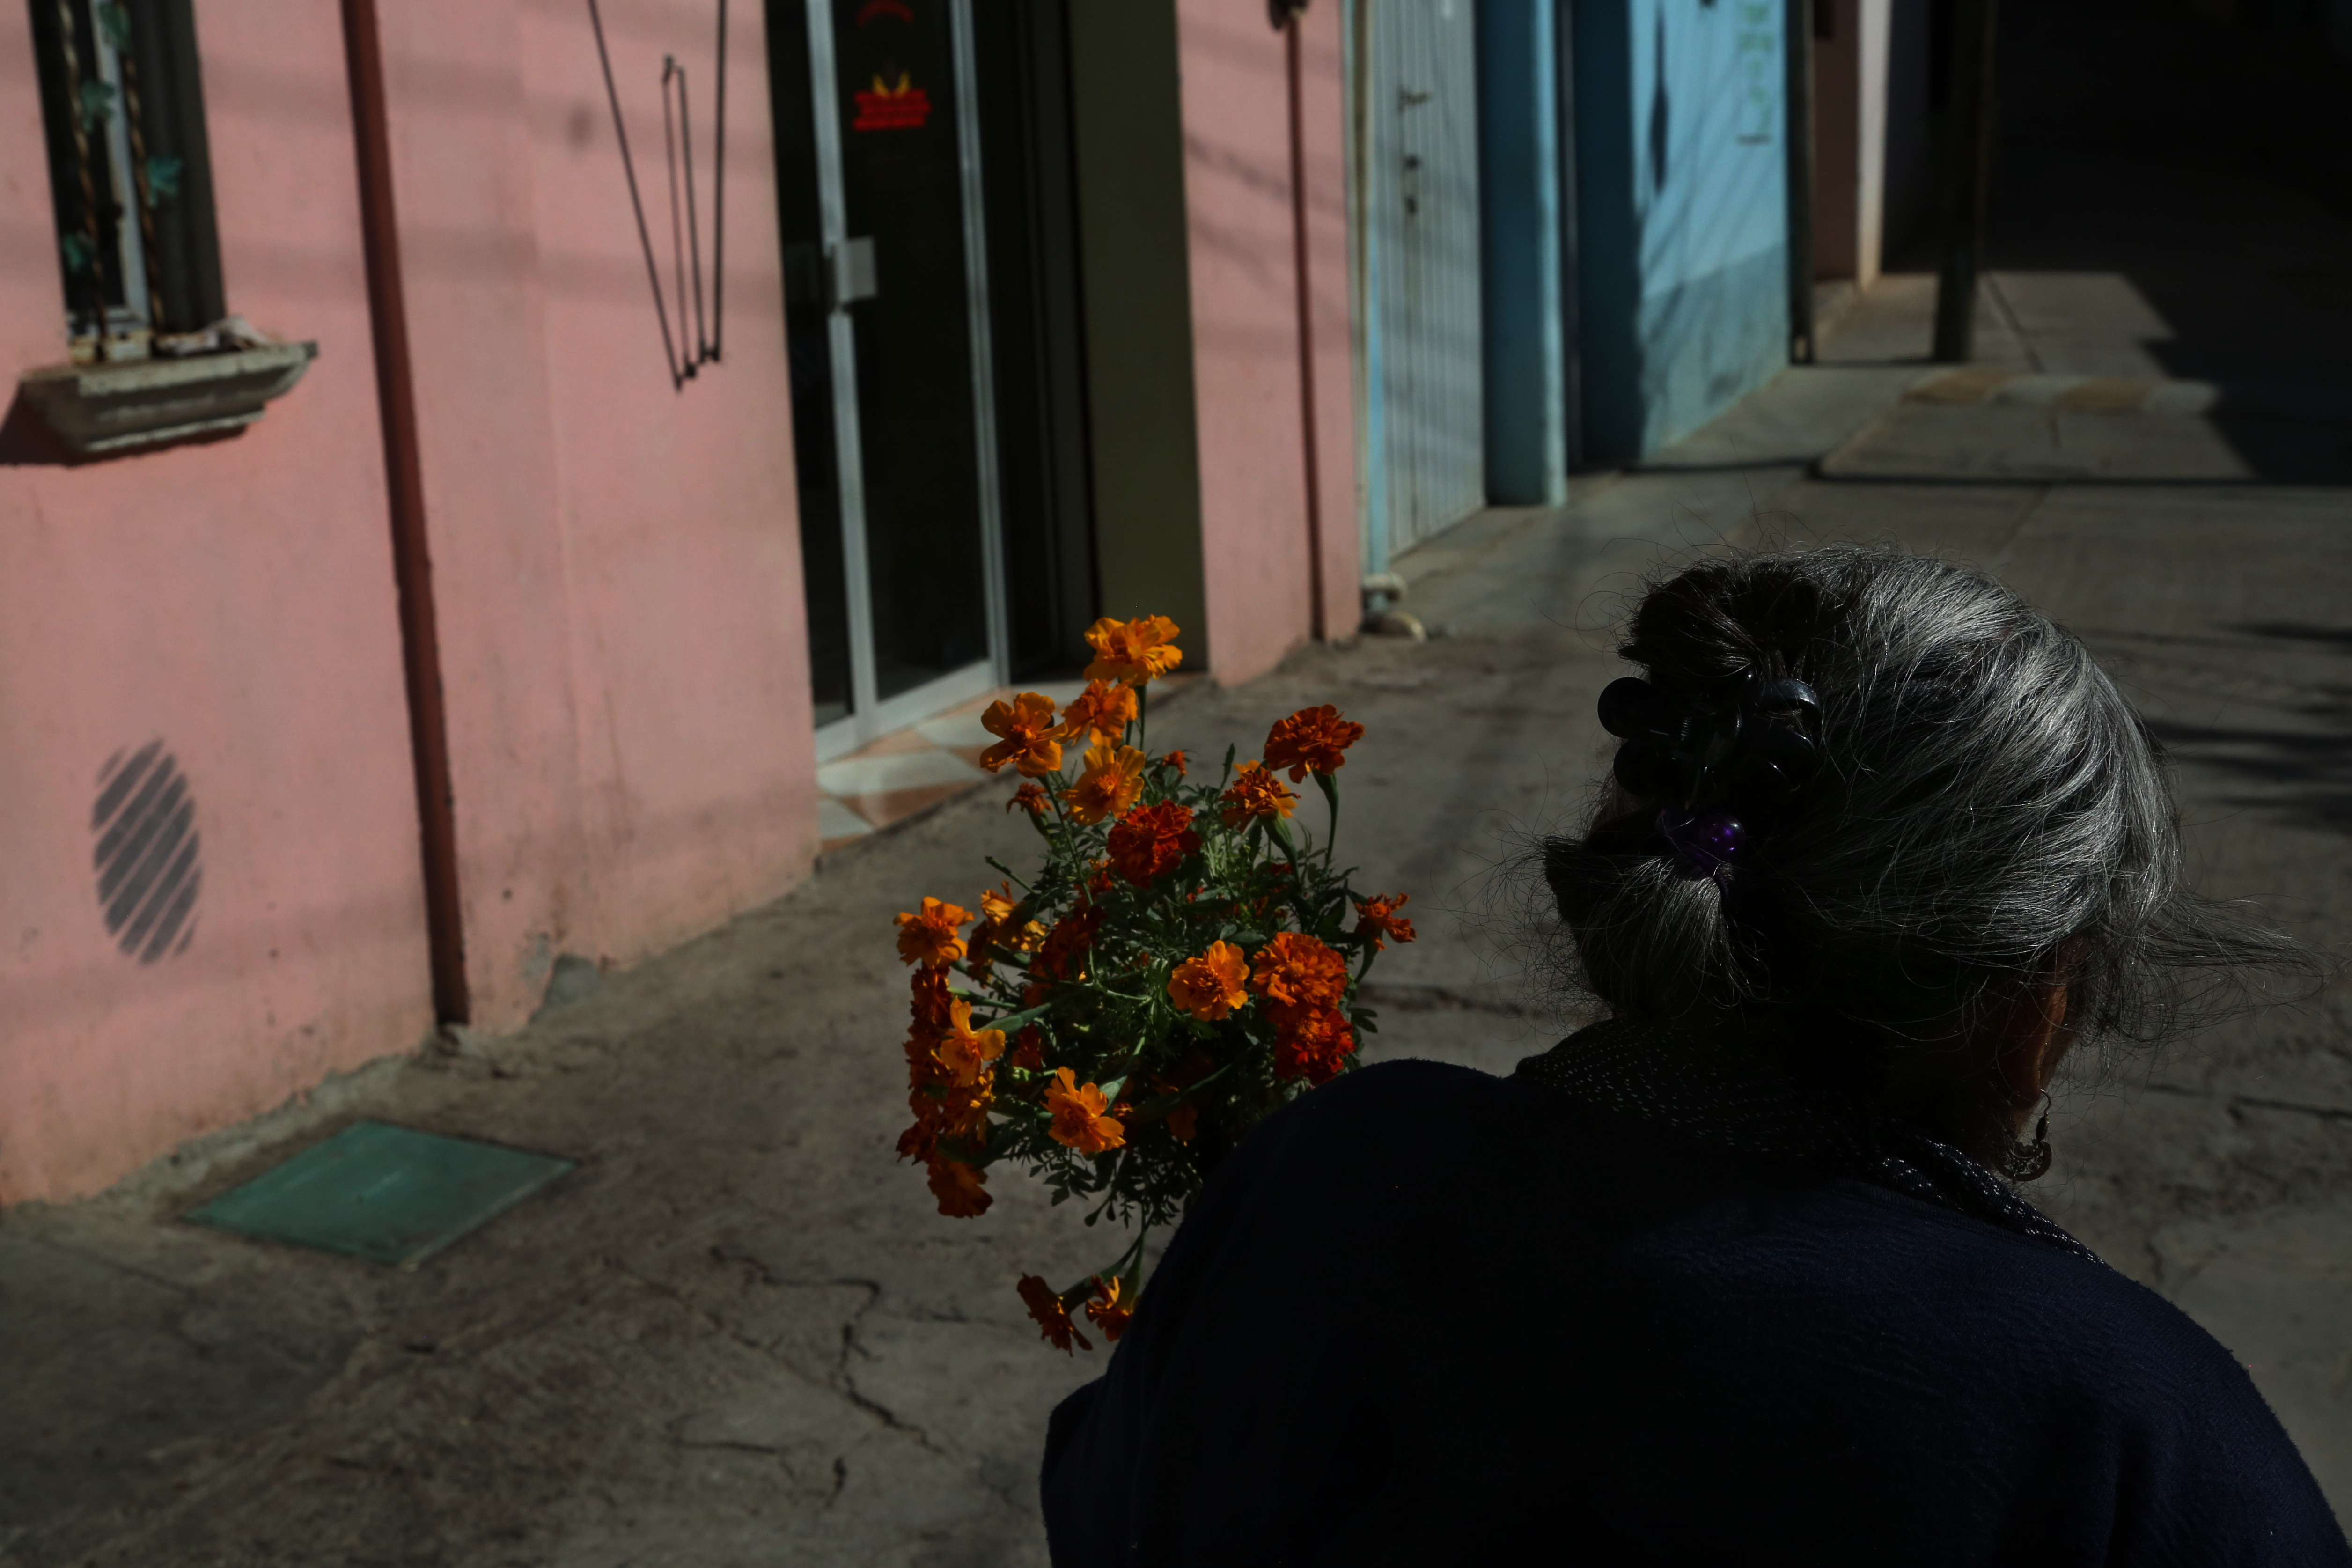 Photo 1: Teresa Raymundo walks to a funeral with a bundle of flowers in San Juan del Rio, Oaxaca, Mexico. Photo 2: The church in San Juan del Rio, Oaxaca, Mexico was built in the early 1800's.